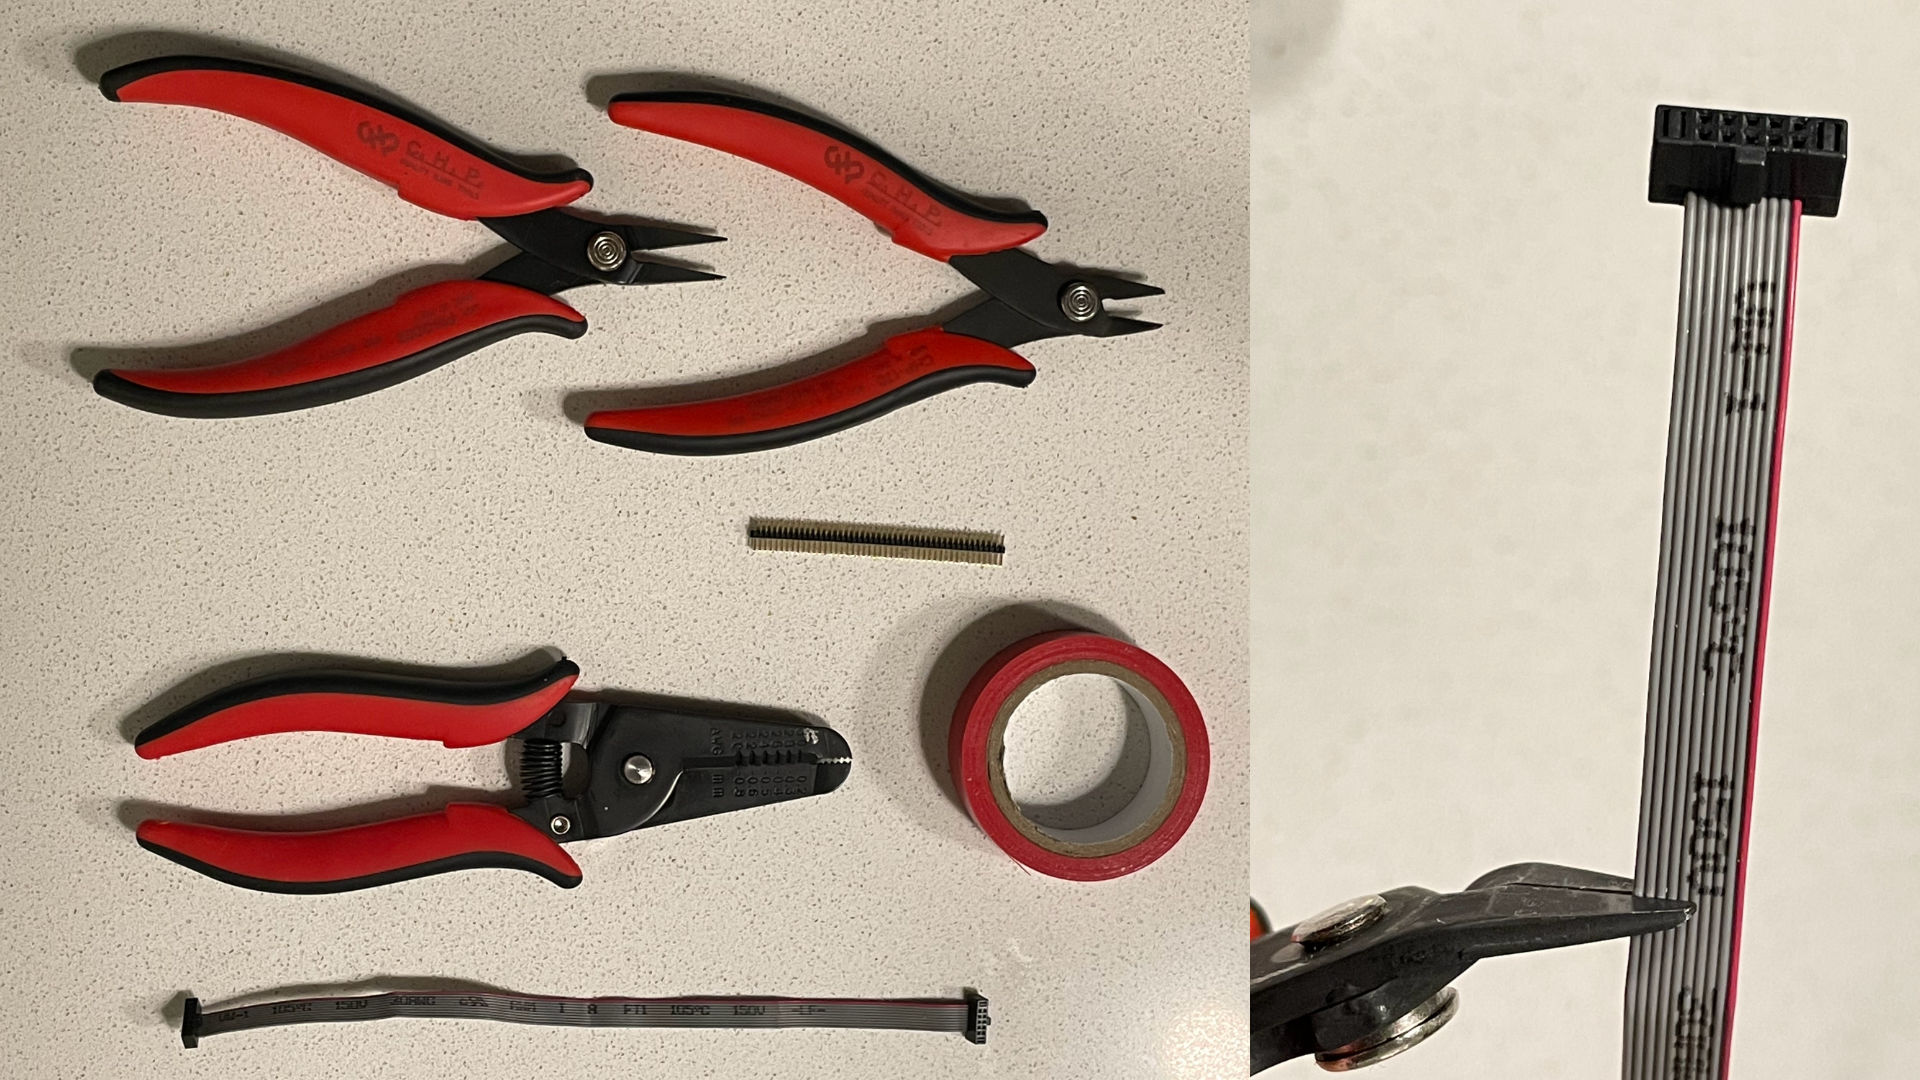 Cortex components and cutting the cable